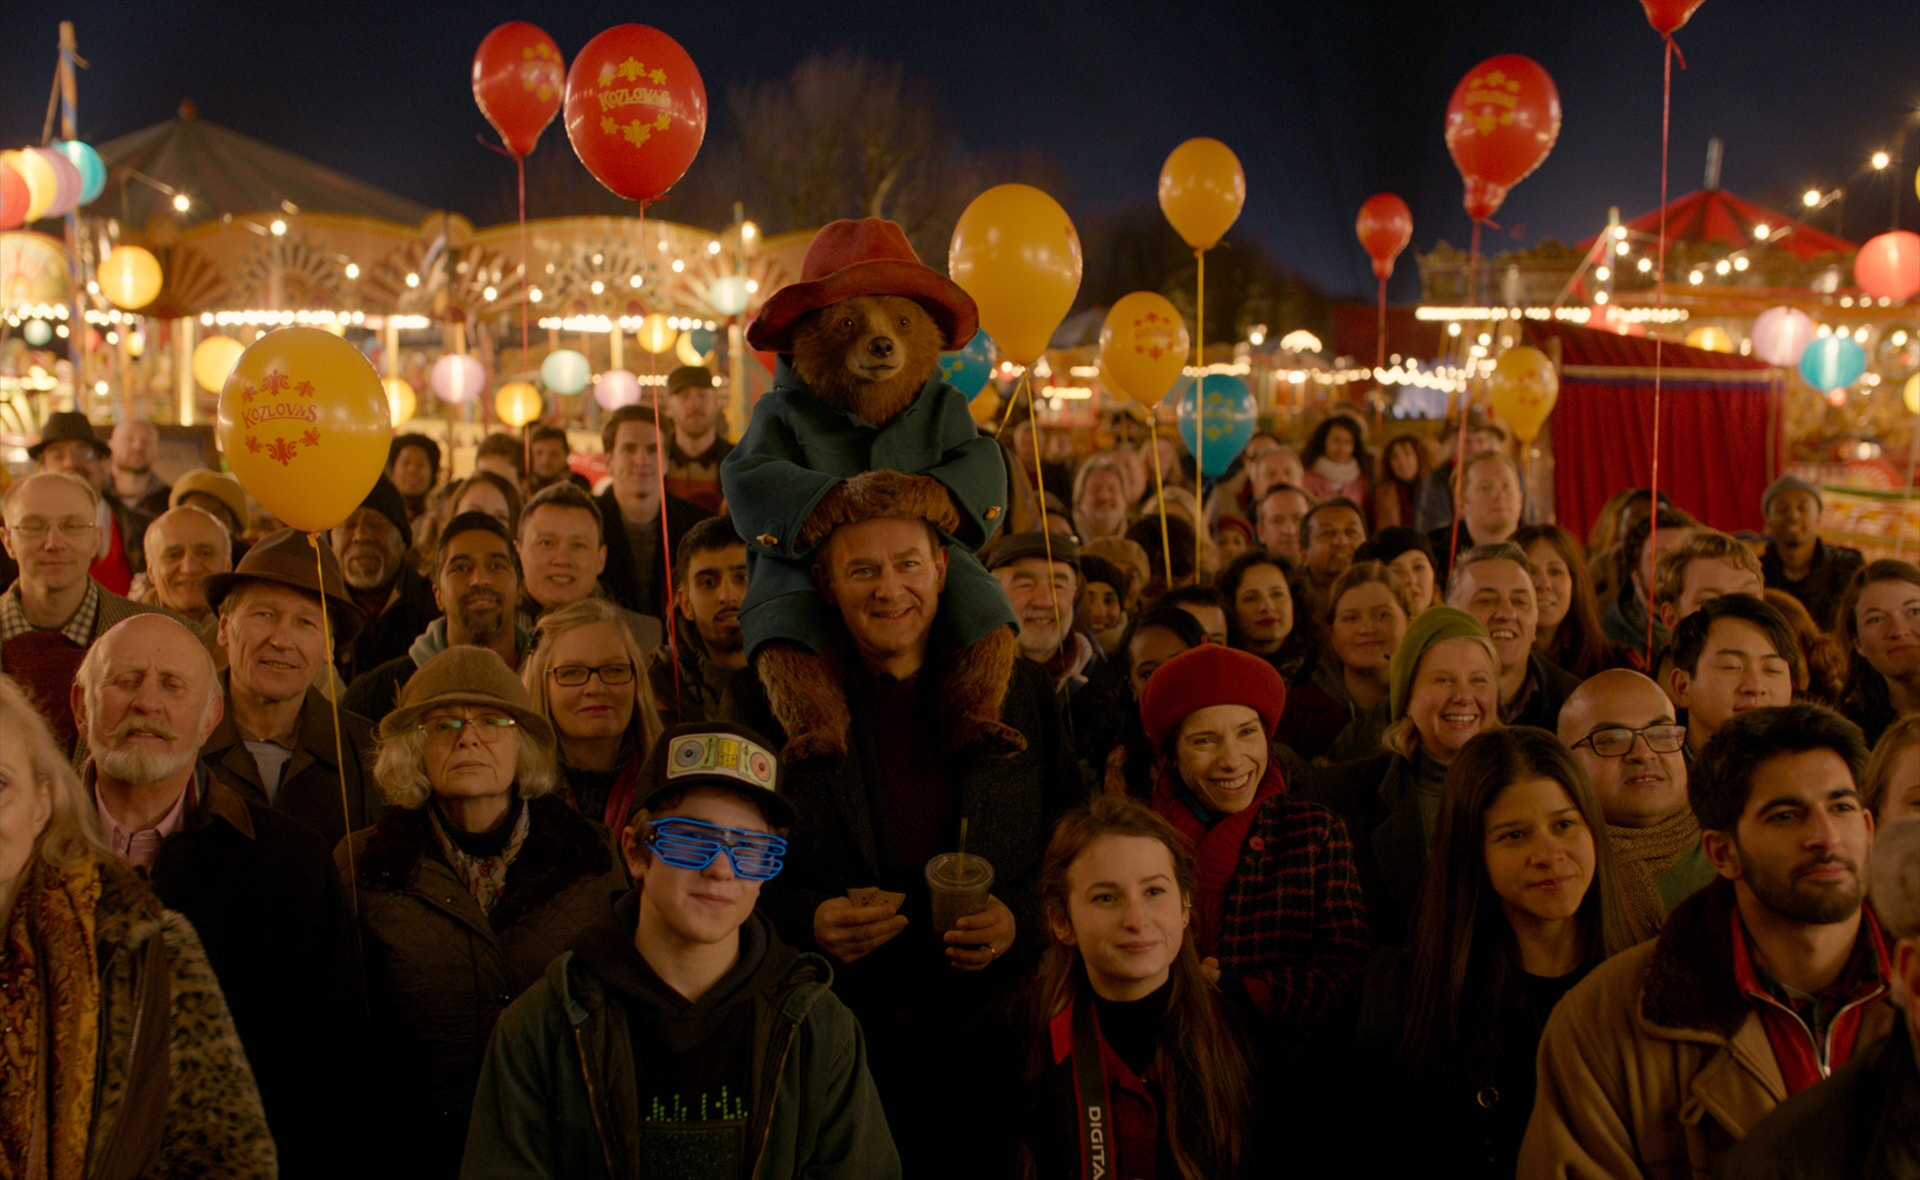 """JULIE WALTERS as Mrs. Bird, SAMUEL JOSLIN as Jonathan Brown, Paddington voiced by BEN WHISHAW, HUGH BONNEVILLE as Henry Brown, MADELEINE HARRIS as Judy Brown and SALLY HAWKINS as Mary Brown in the family adventure """"PADDINGTON 2,"""" from Warner Bros. Pictures and STUDIOCANAL, in association with Anton Capital Entertainment S.C.A., a Warner Bros. Pictures release."""